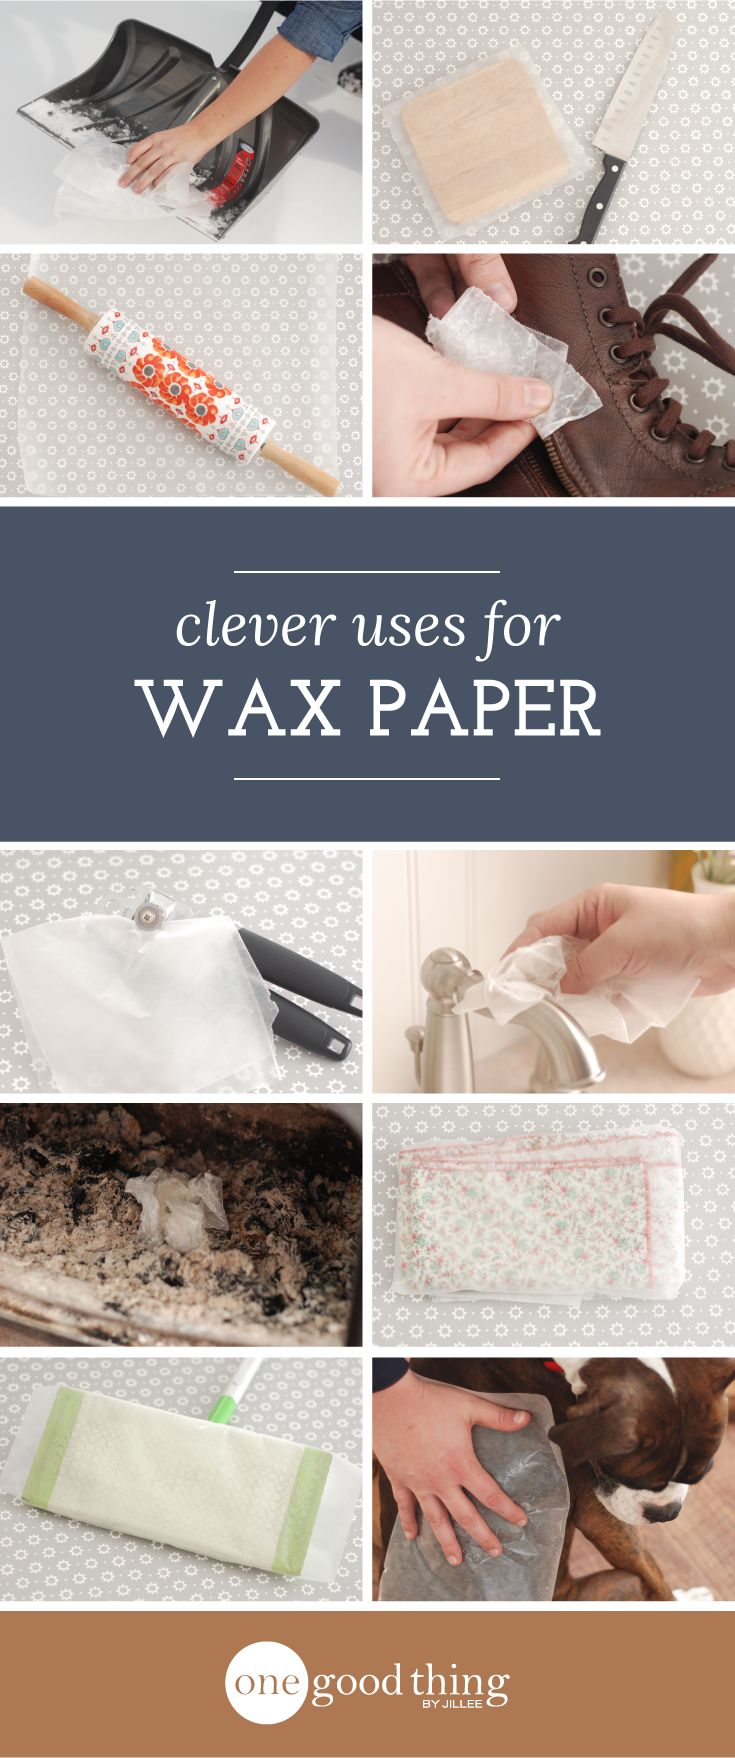 Household Uses for Wax Paper                                                                                                                                                                                 More